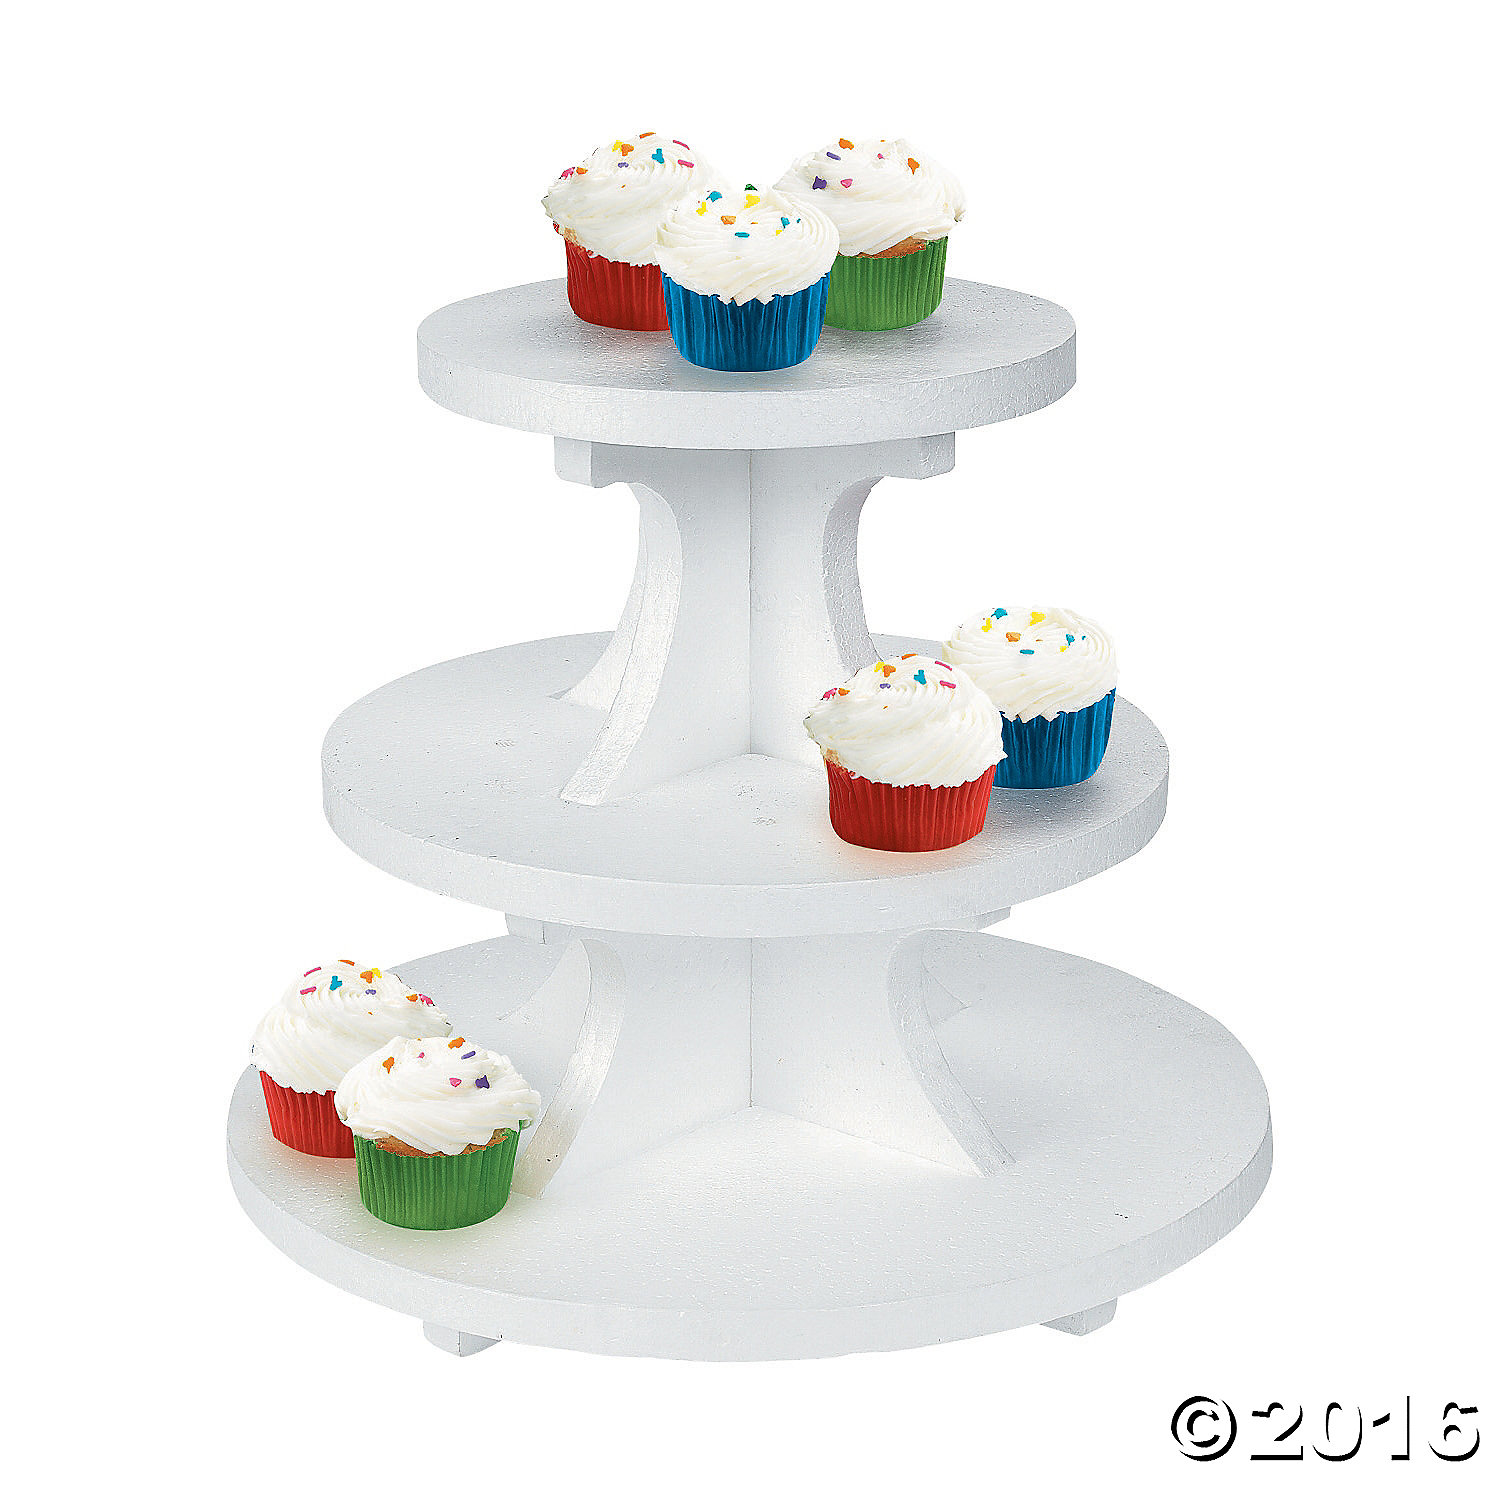 Marvellous ferris wheel cupcake holder for wedding with ferris wheel cupcake stand